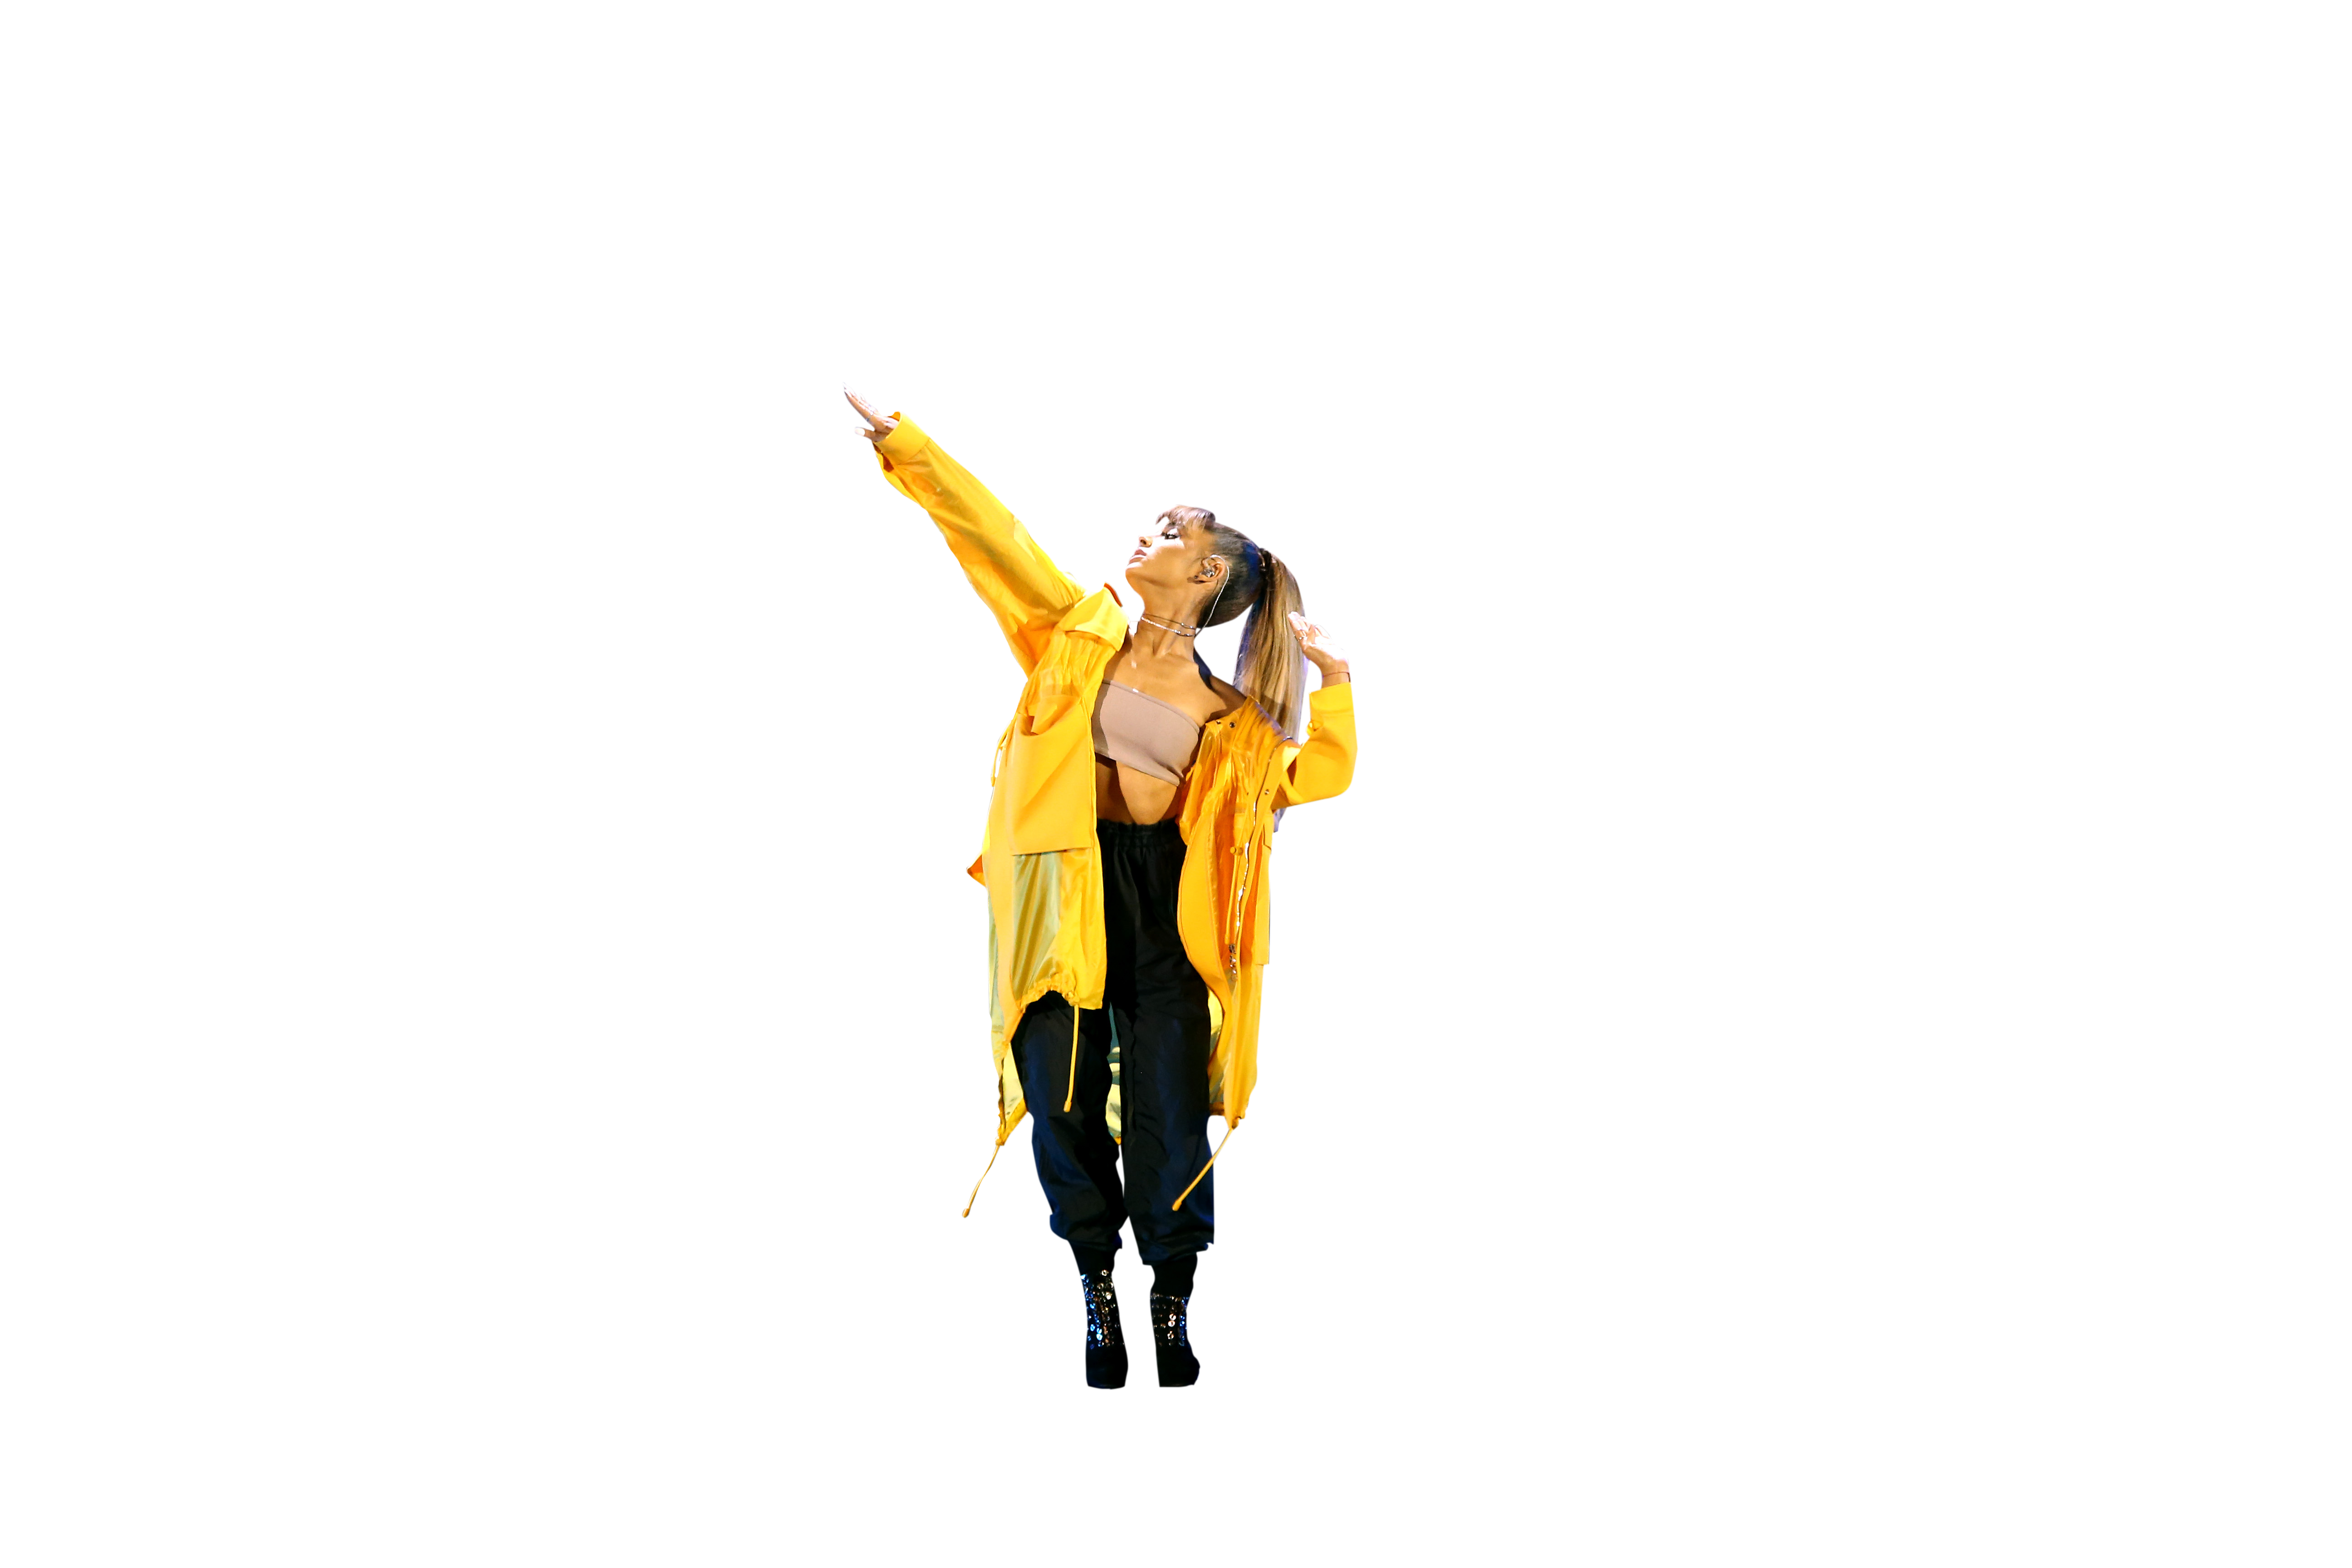 Ariana Grande in yellow dress on stage